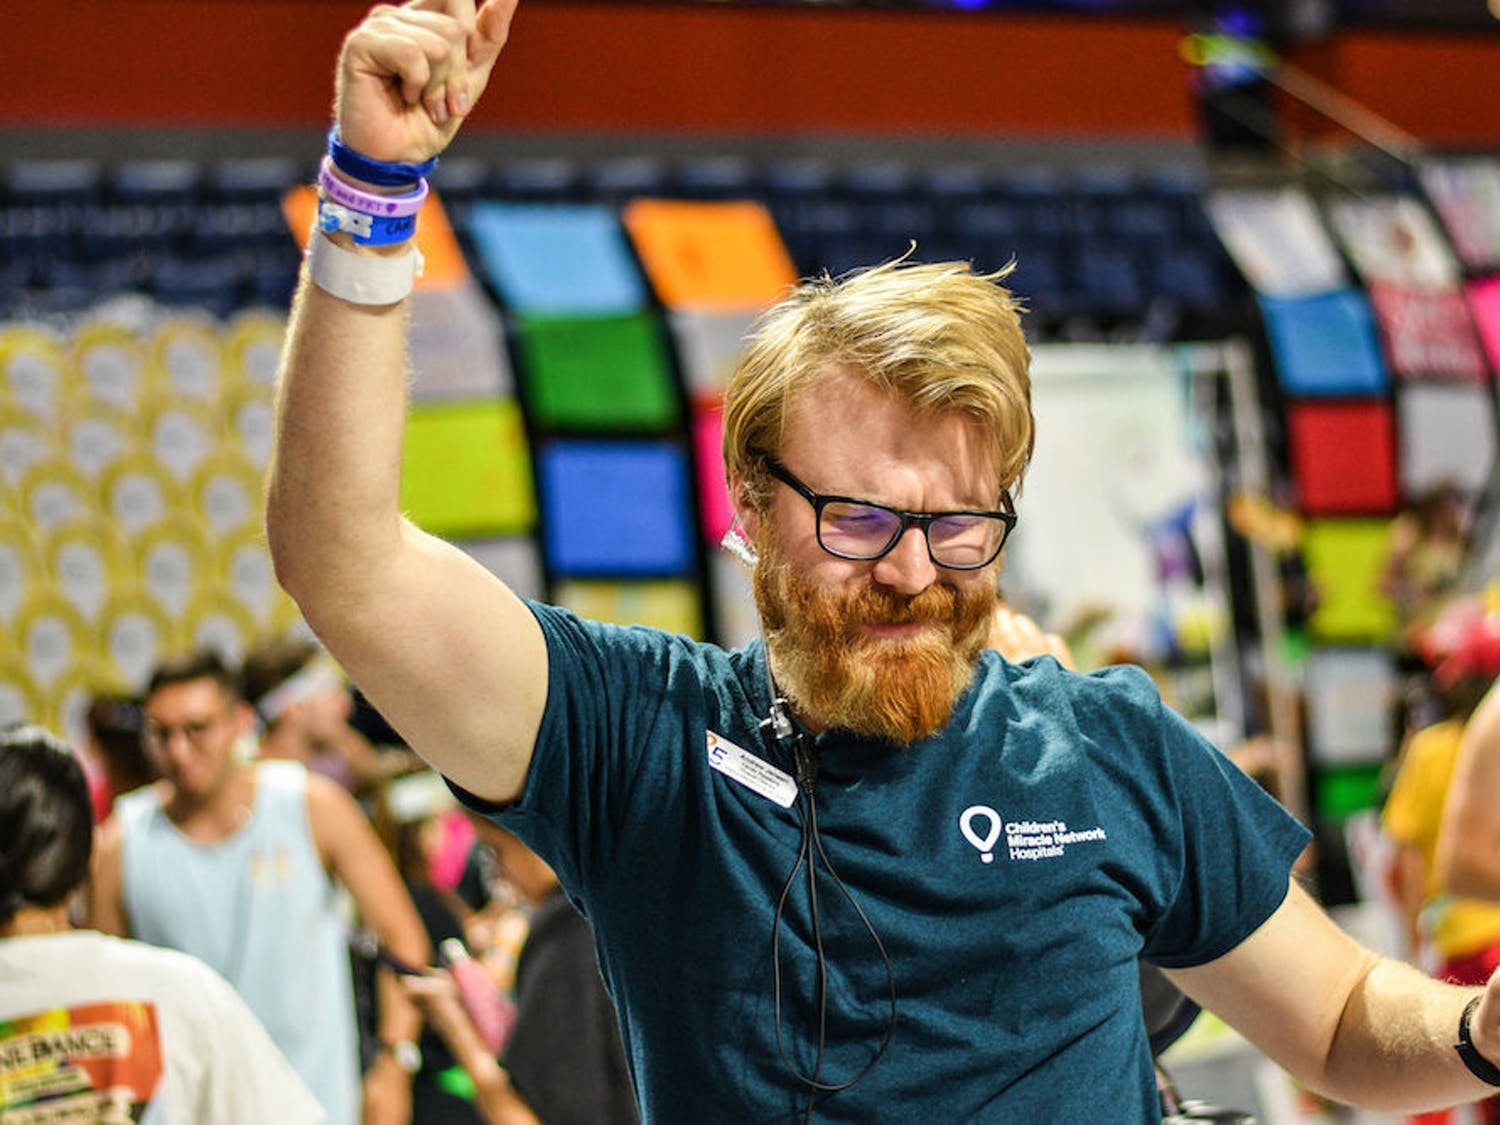 Andrew Jensen, the Overall Director of Dance Marathon 2019, rocks out during the Savants of Soul's performance Saturday night in the O'Connell Center. Dance Marathon lasted for 26.2 hours and raised $3,230,025.23 for children at UF Health Shands Children's Hospital and Children's Miracle Network.